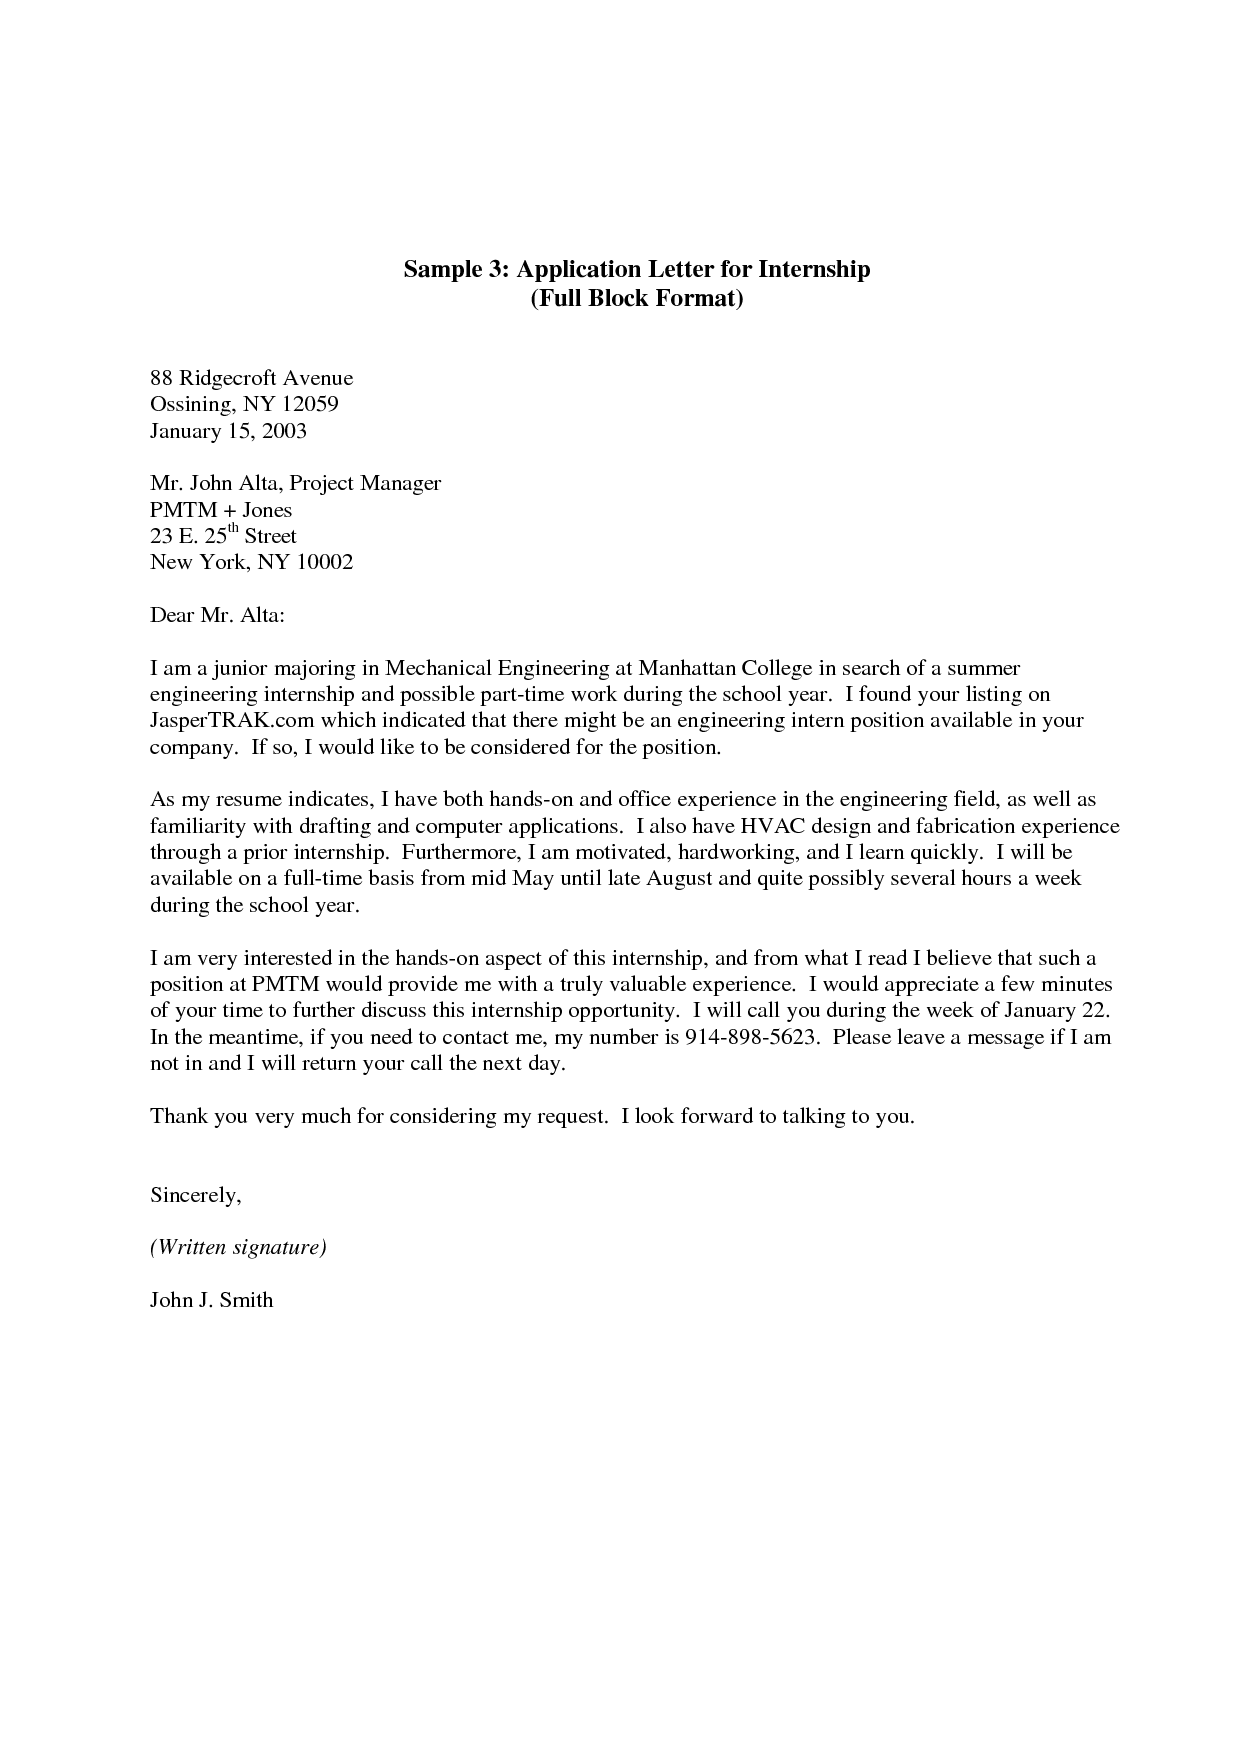 internship application letter here is a sample cover letter for applying for a job or internship